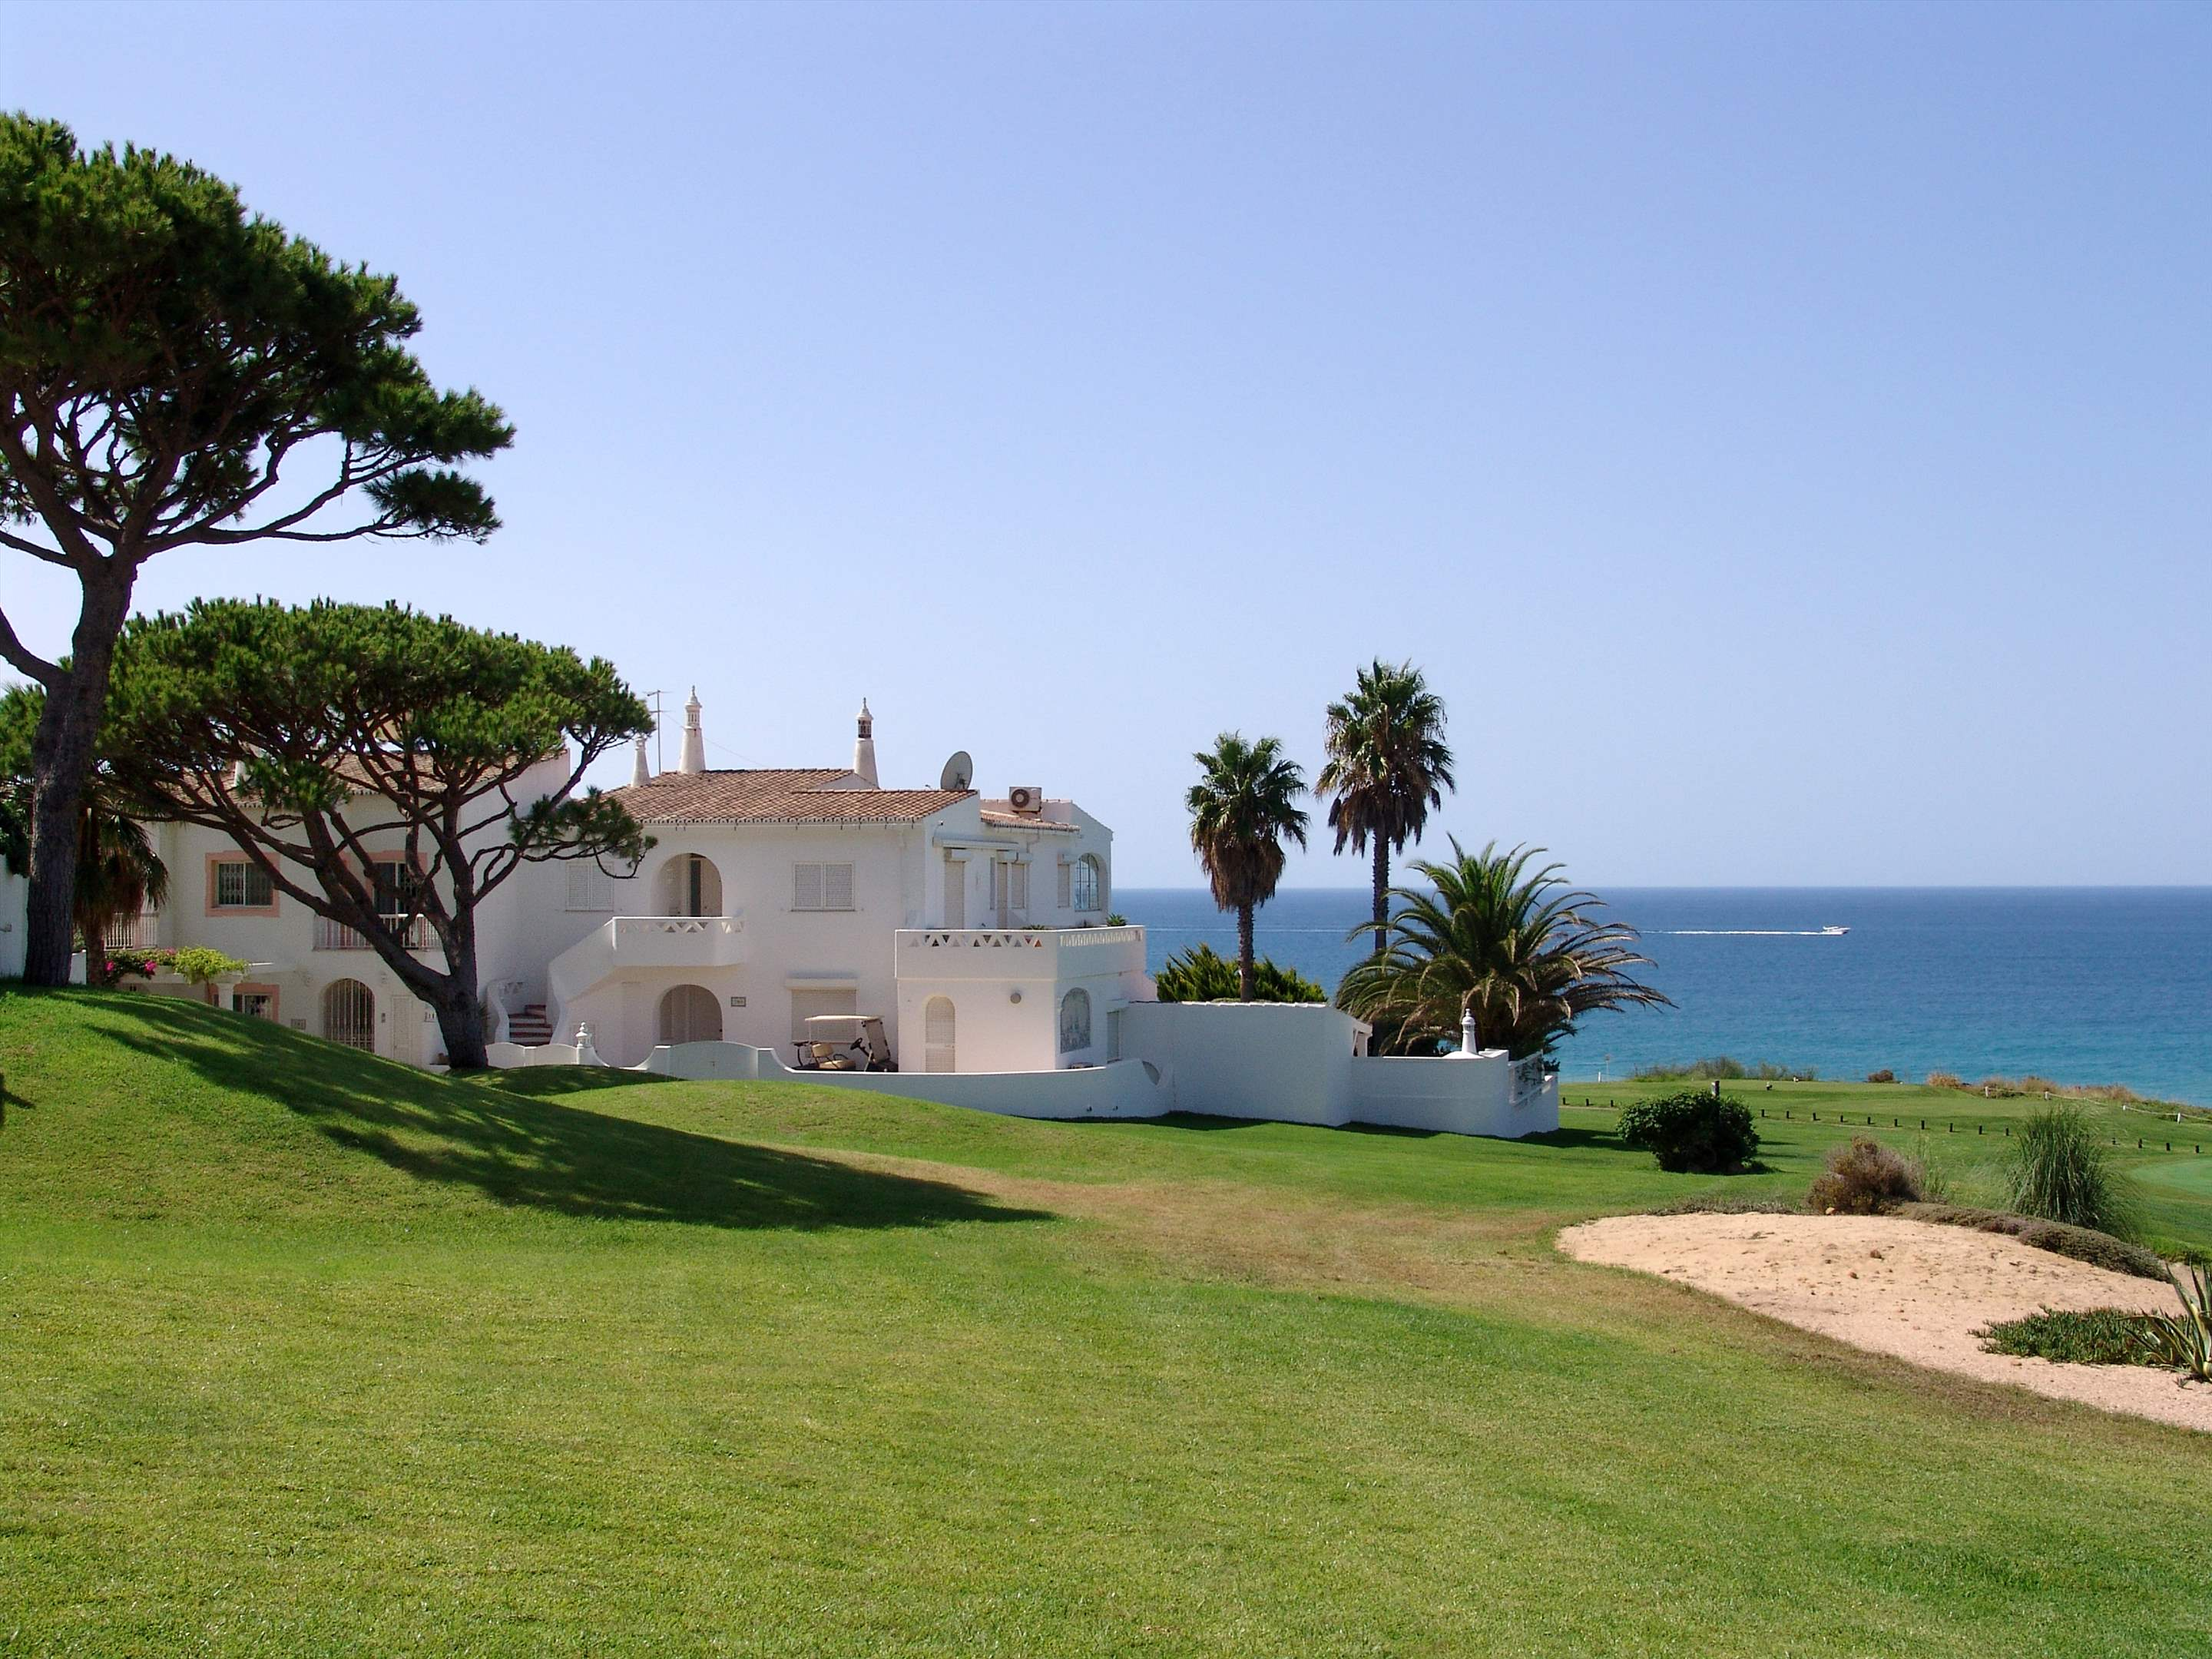 Villas Louisa, 3 bedroom, 3 bedroom villa in Vale do Lobo, Algarve Photo #26